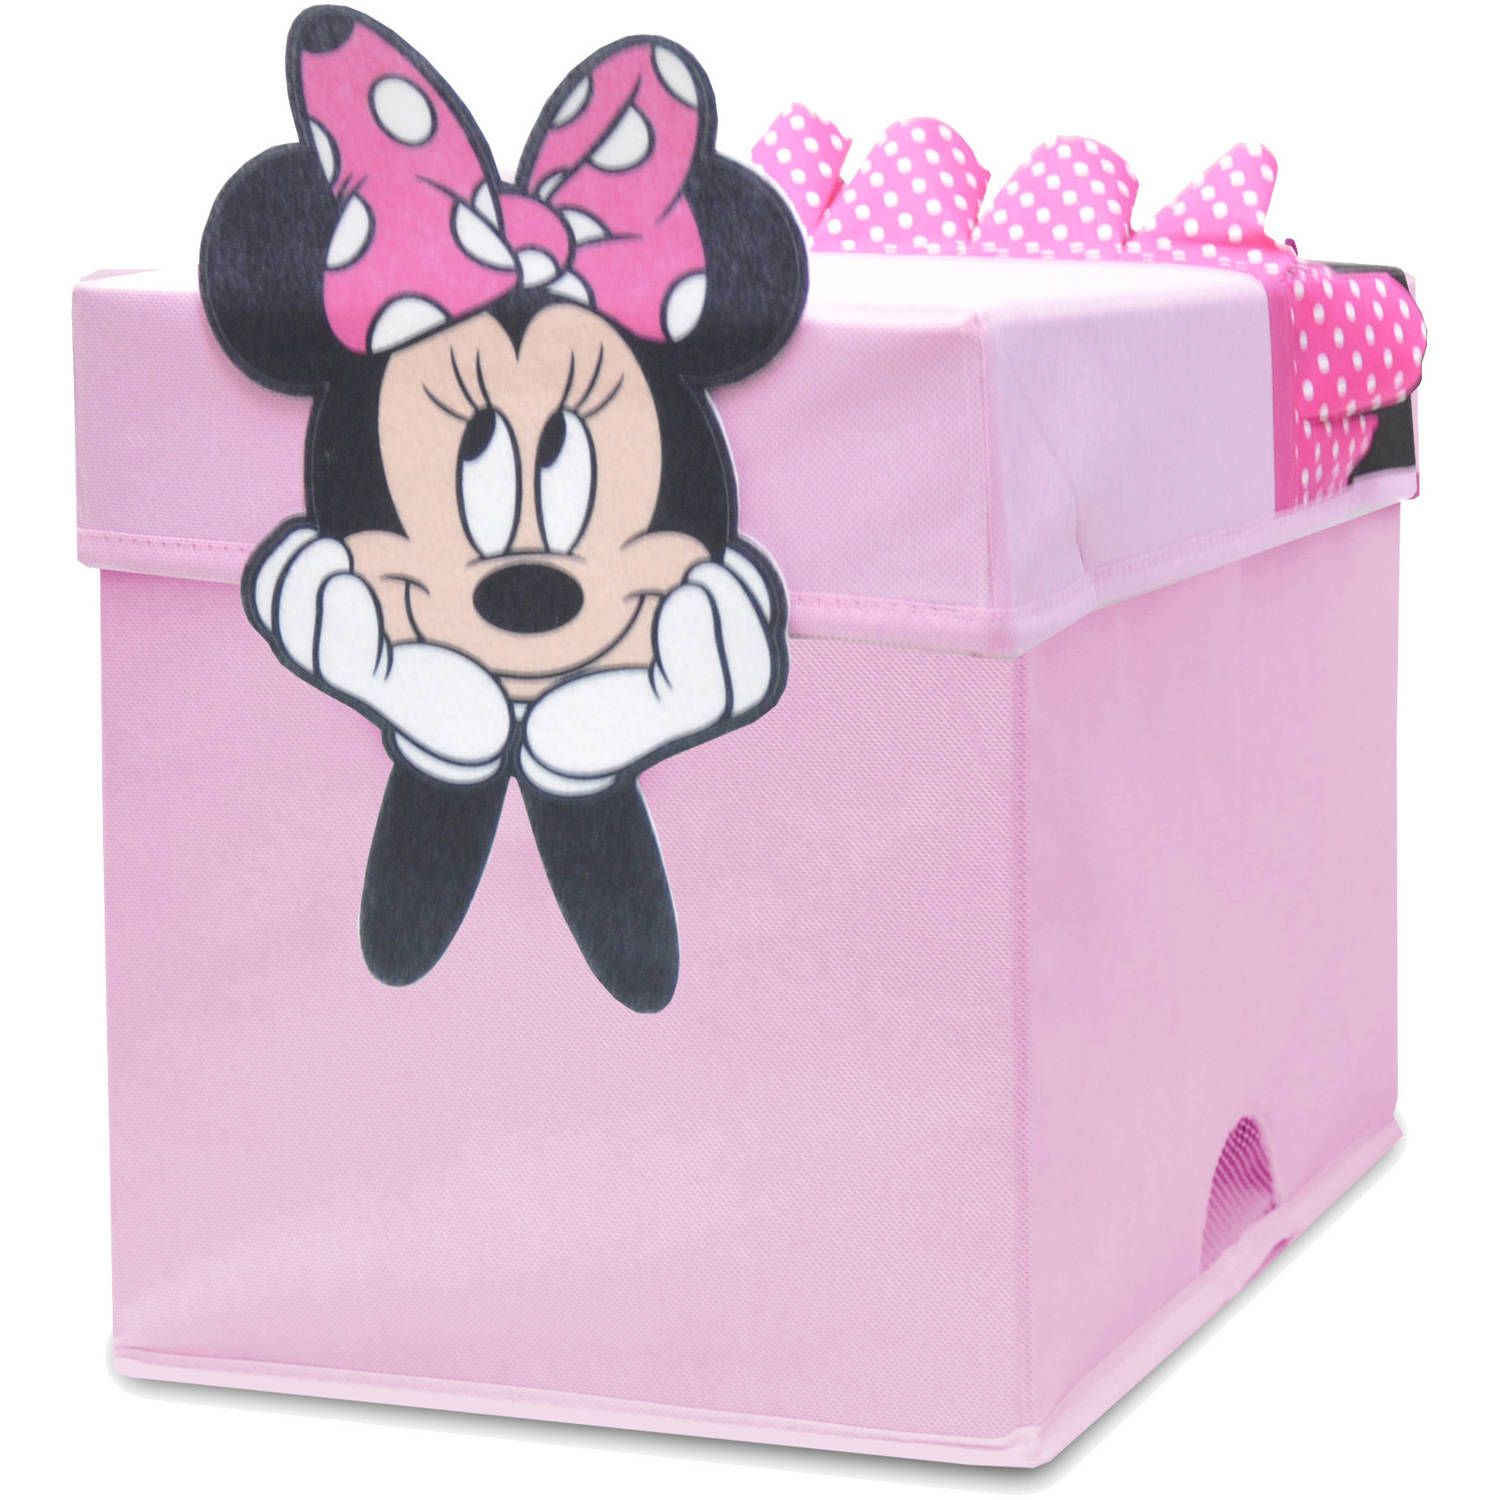 Disney Minnie Mouse Figural Toy Box